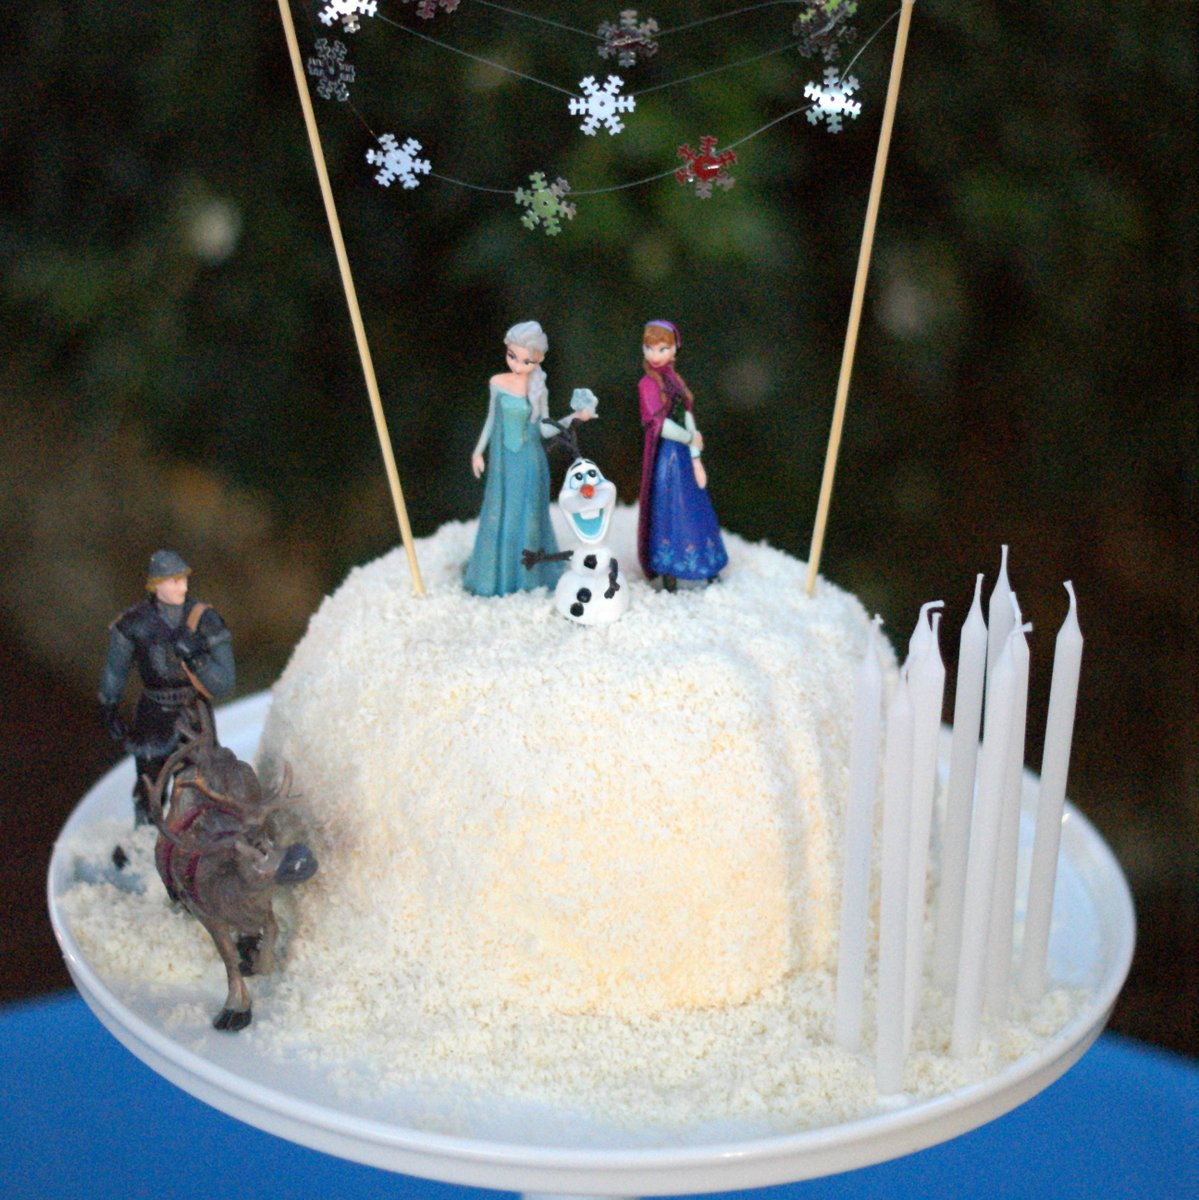 Frozen Movie Cake Disney's 'frozen' movie was